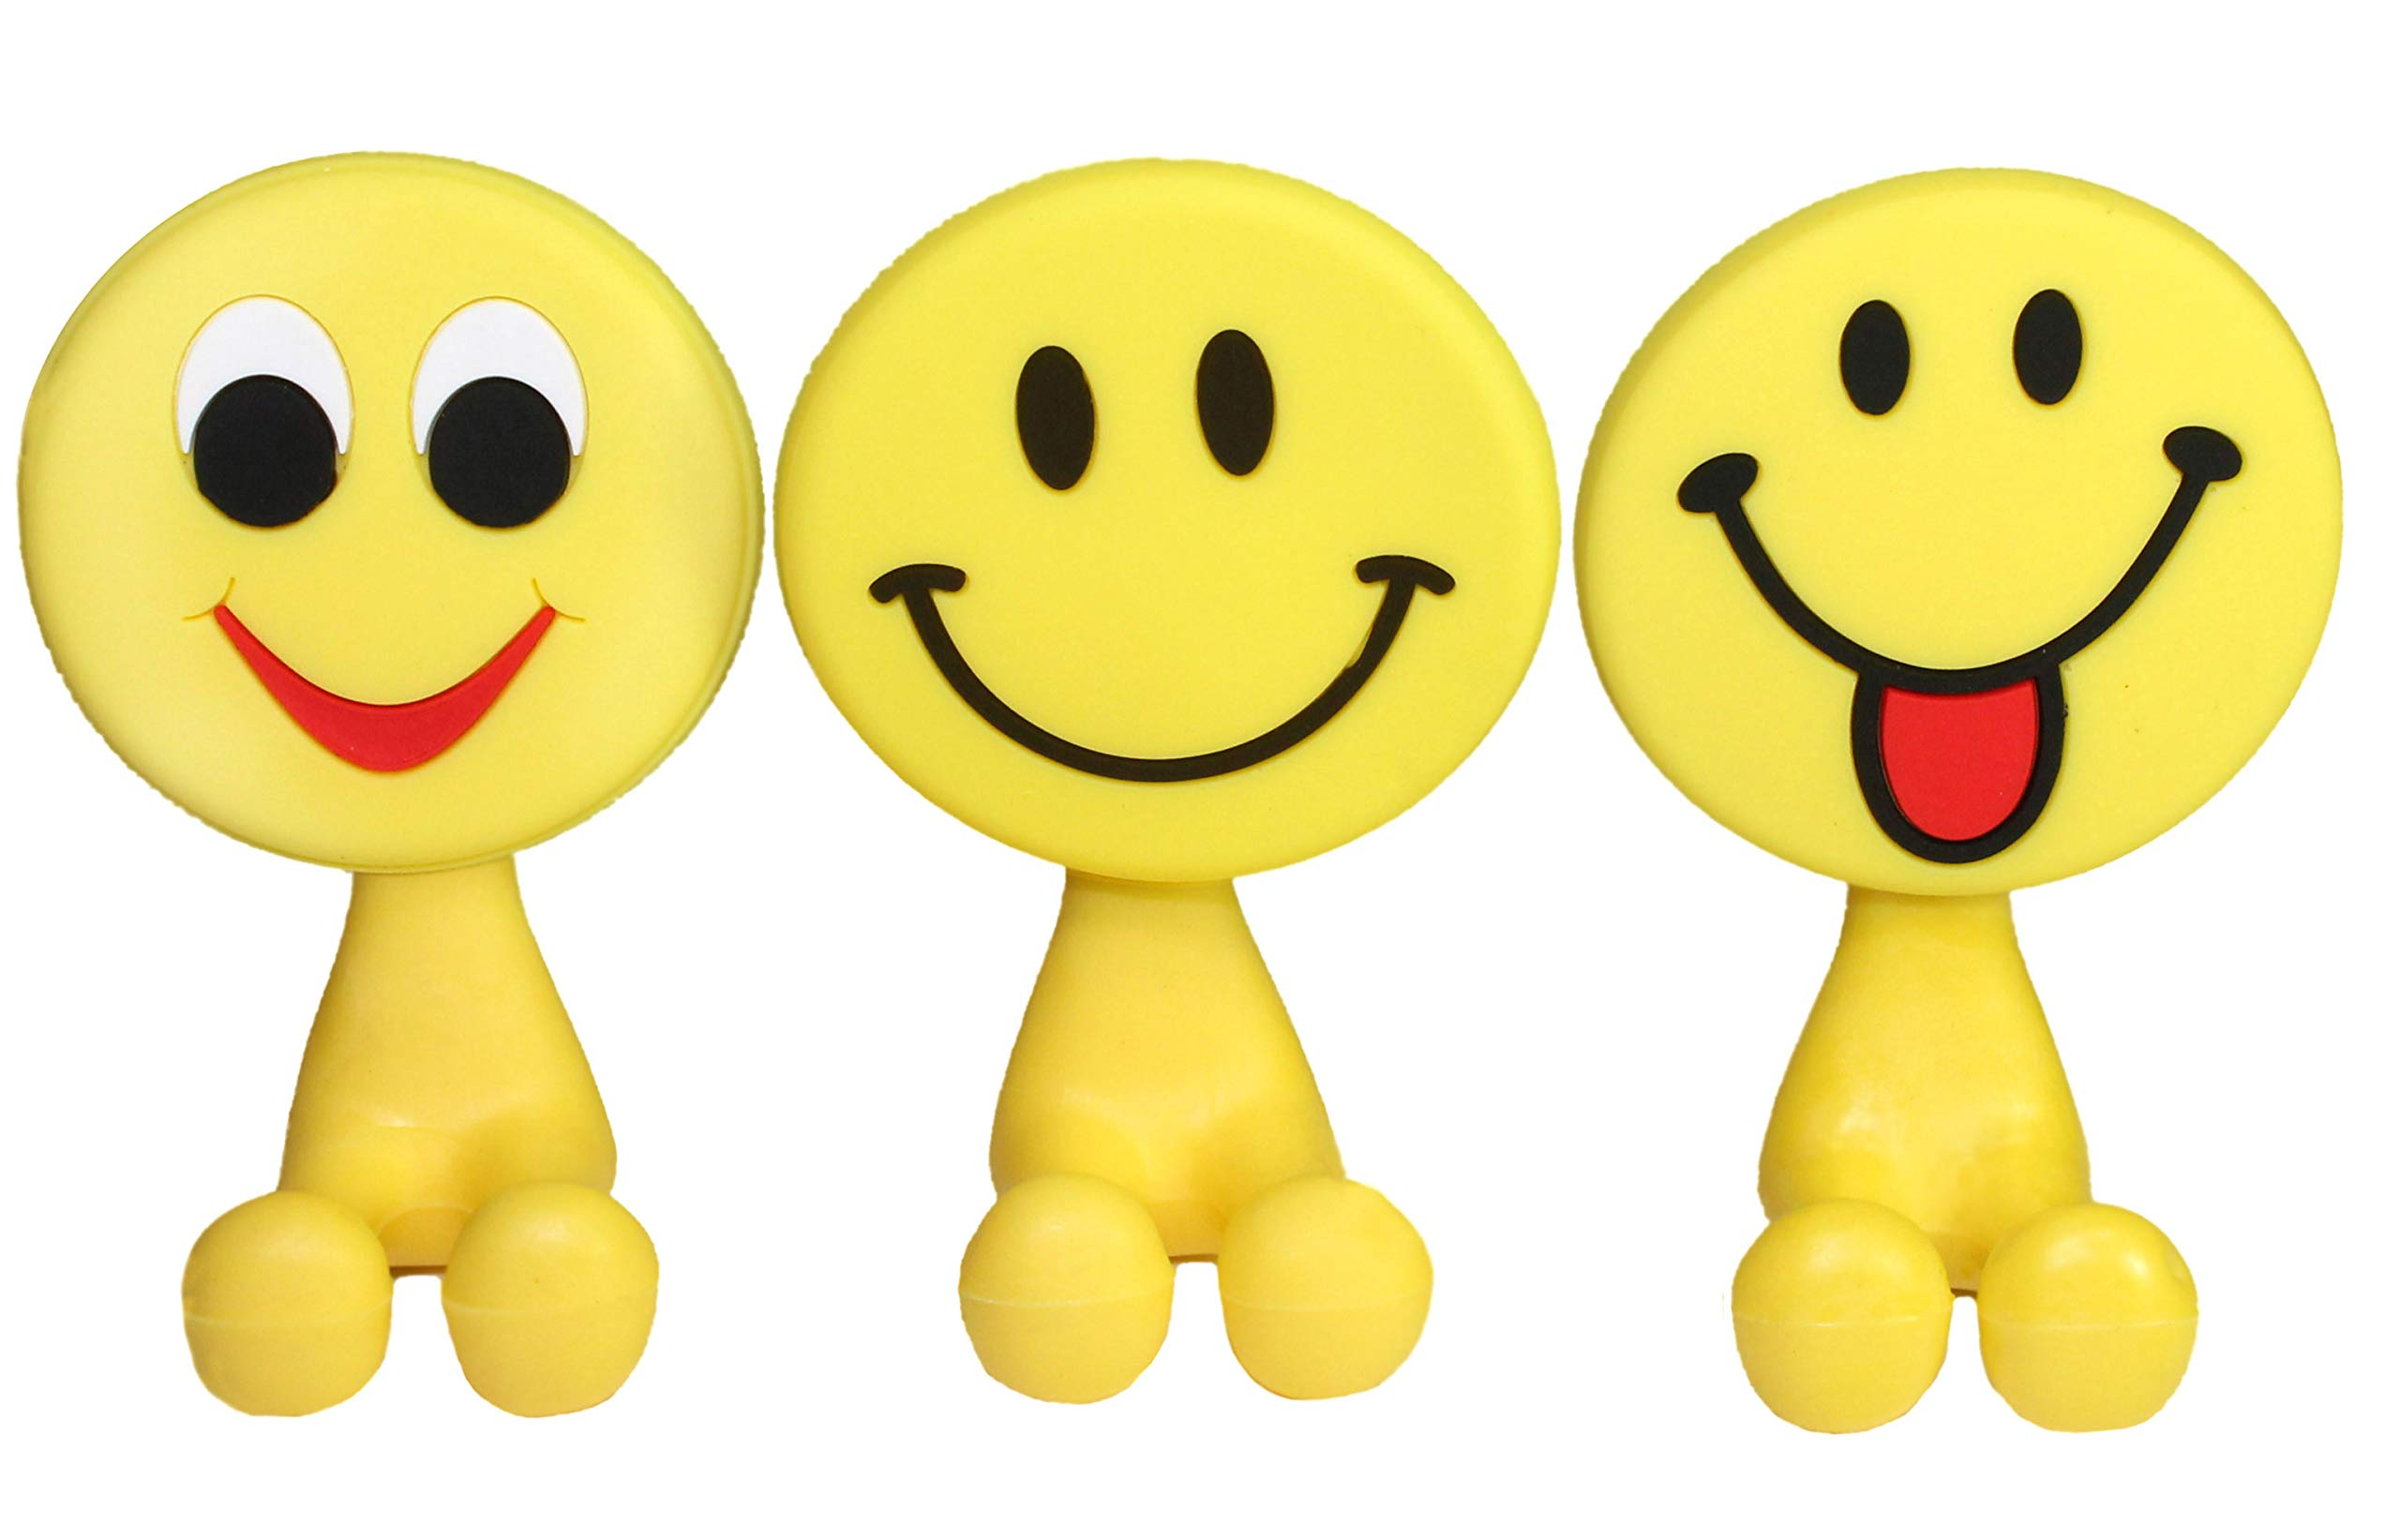 Lucore Happy Smiley Face Toothbrush Holder & Utility Suction Hook - Set of 3 Pcs Emoji Emoticon Style Rubber Wall Hanger Hooks by Lucore Home